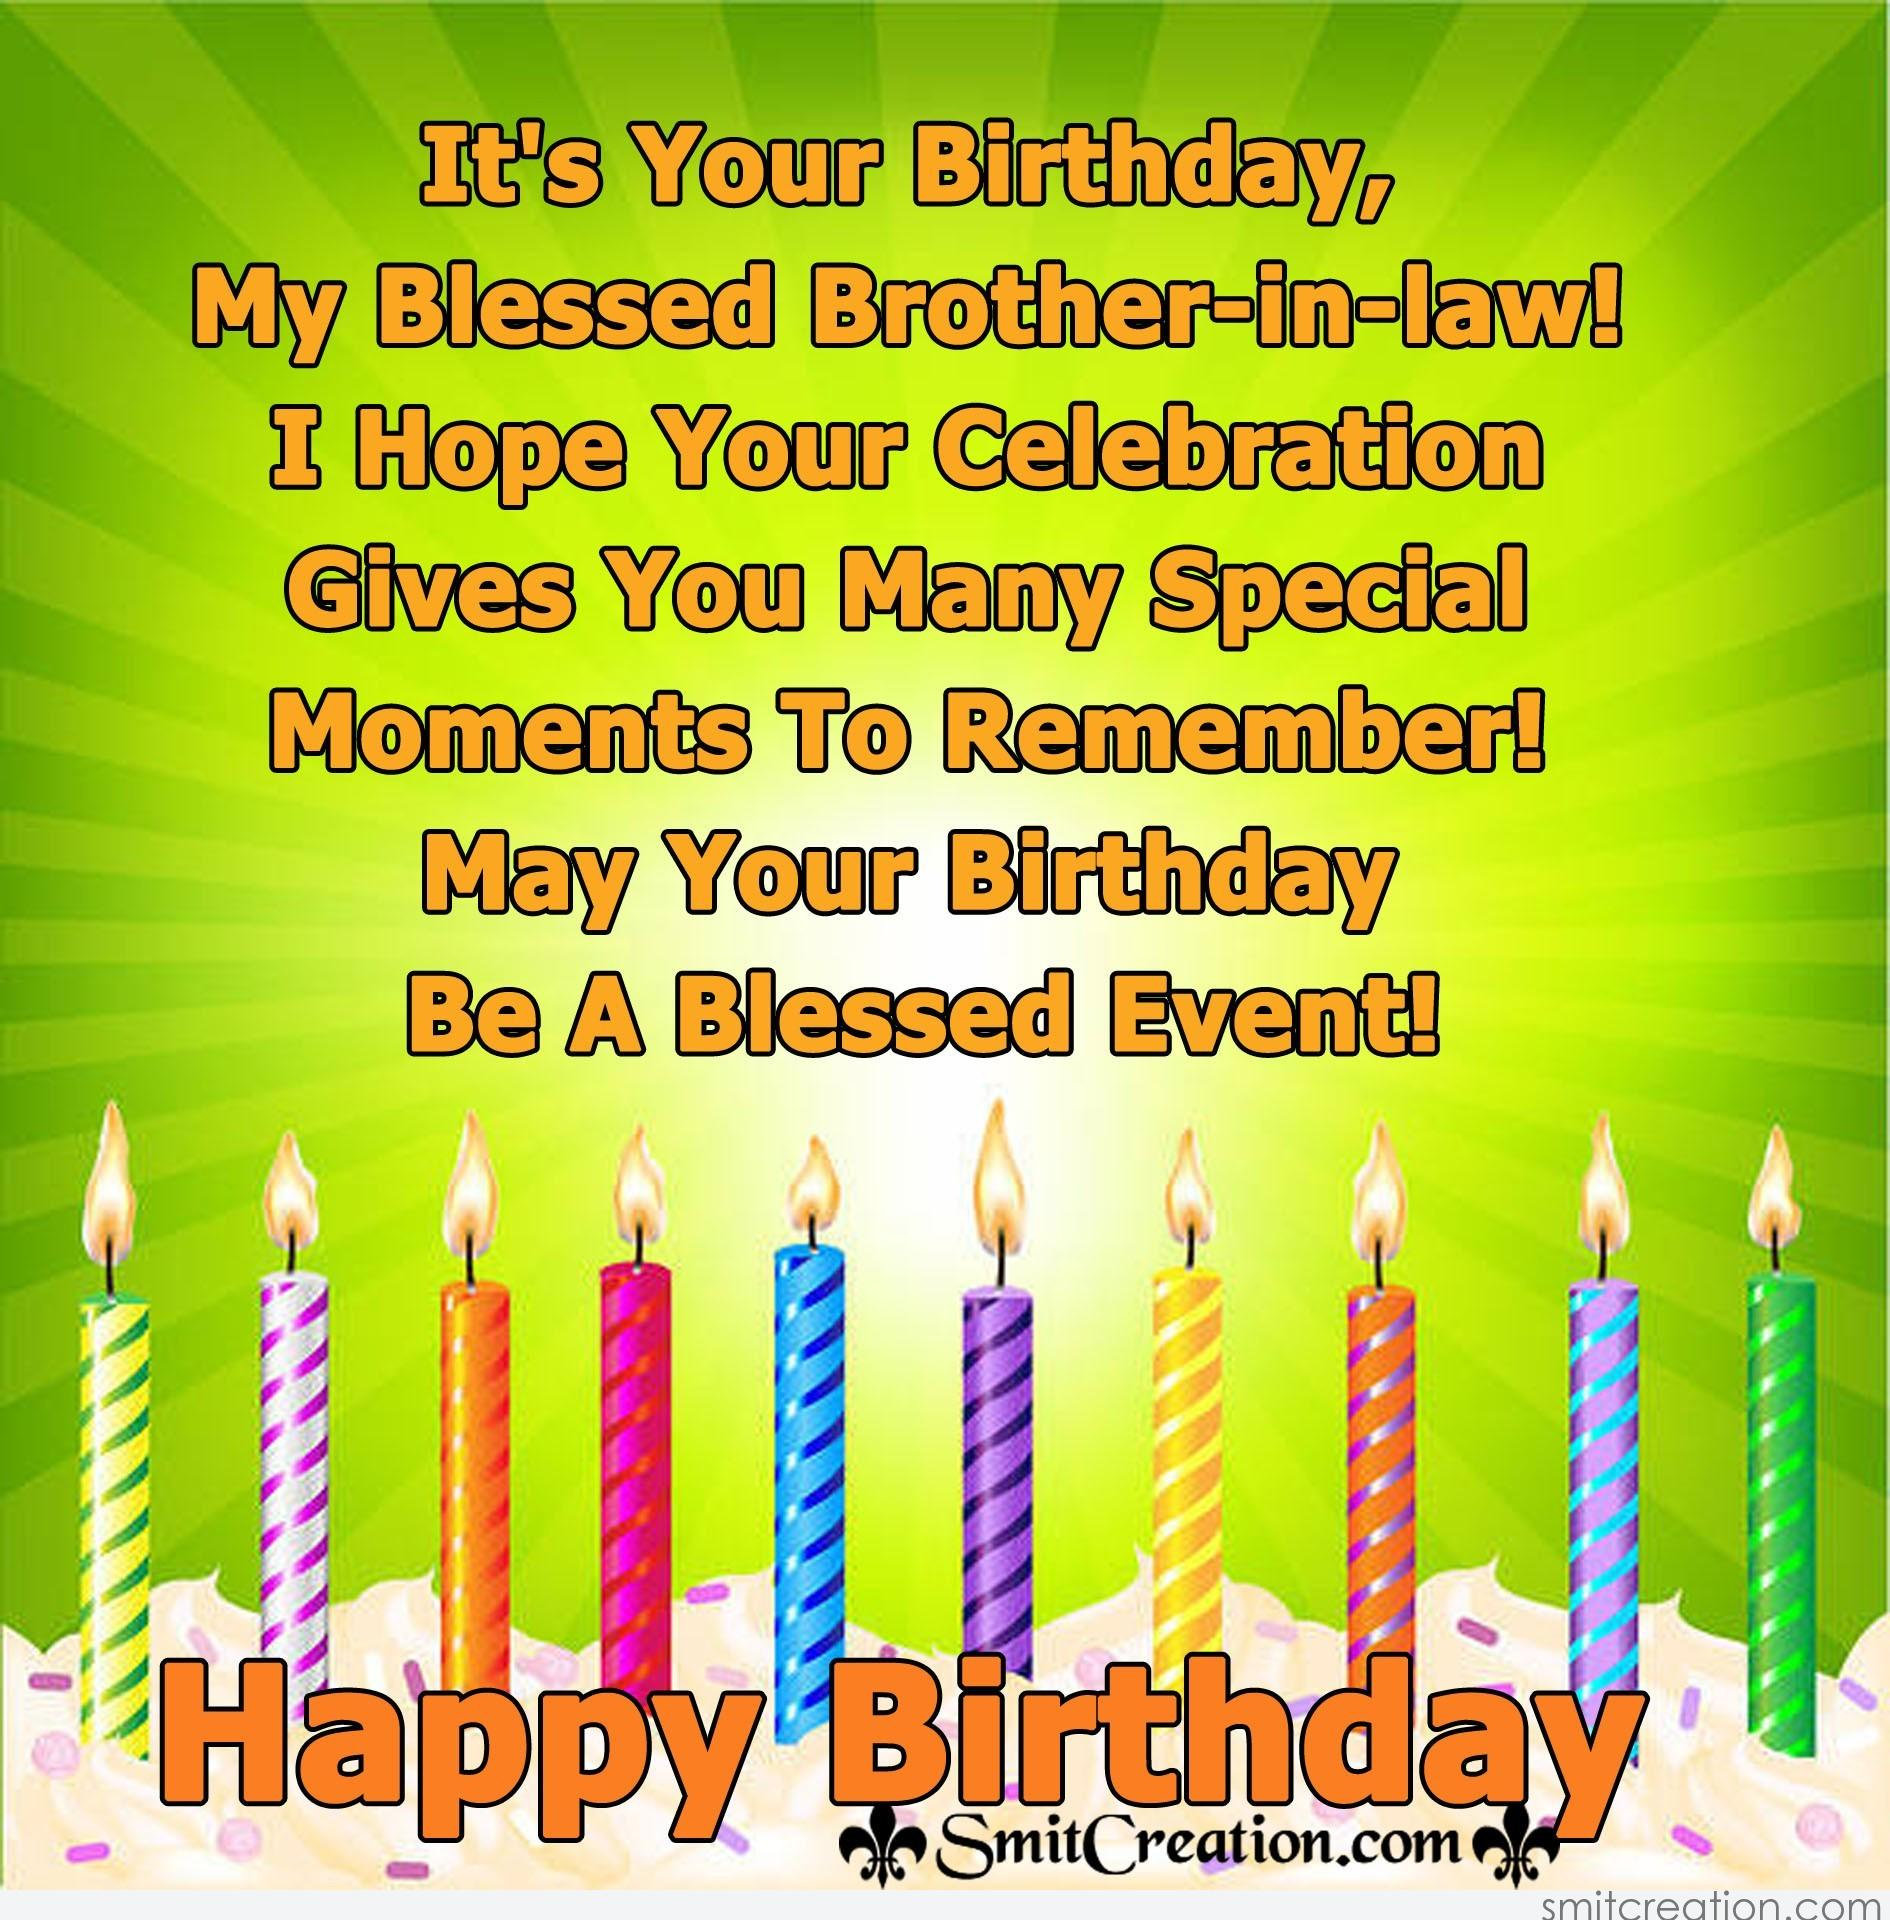 Birthday Wishes For In Law Pictures And Graphics Smitcreation